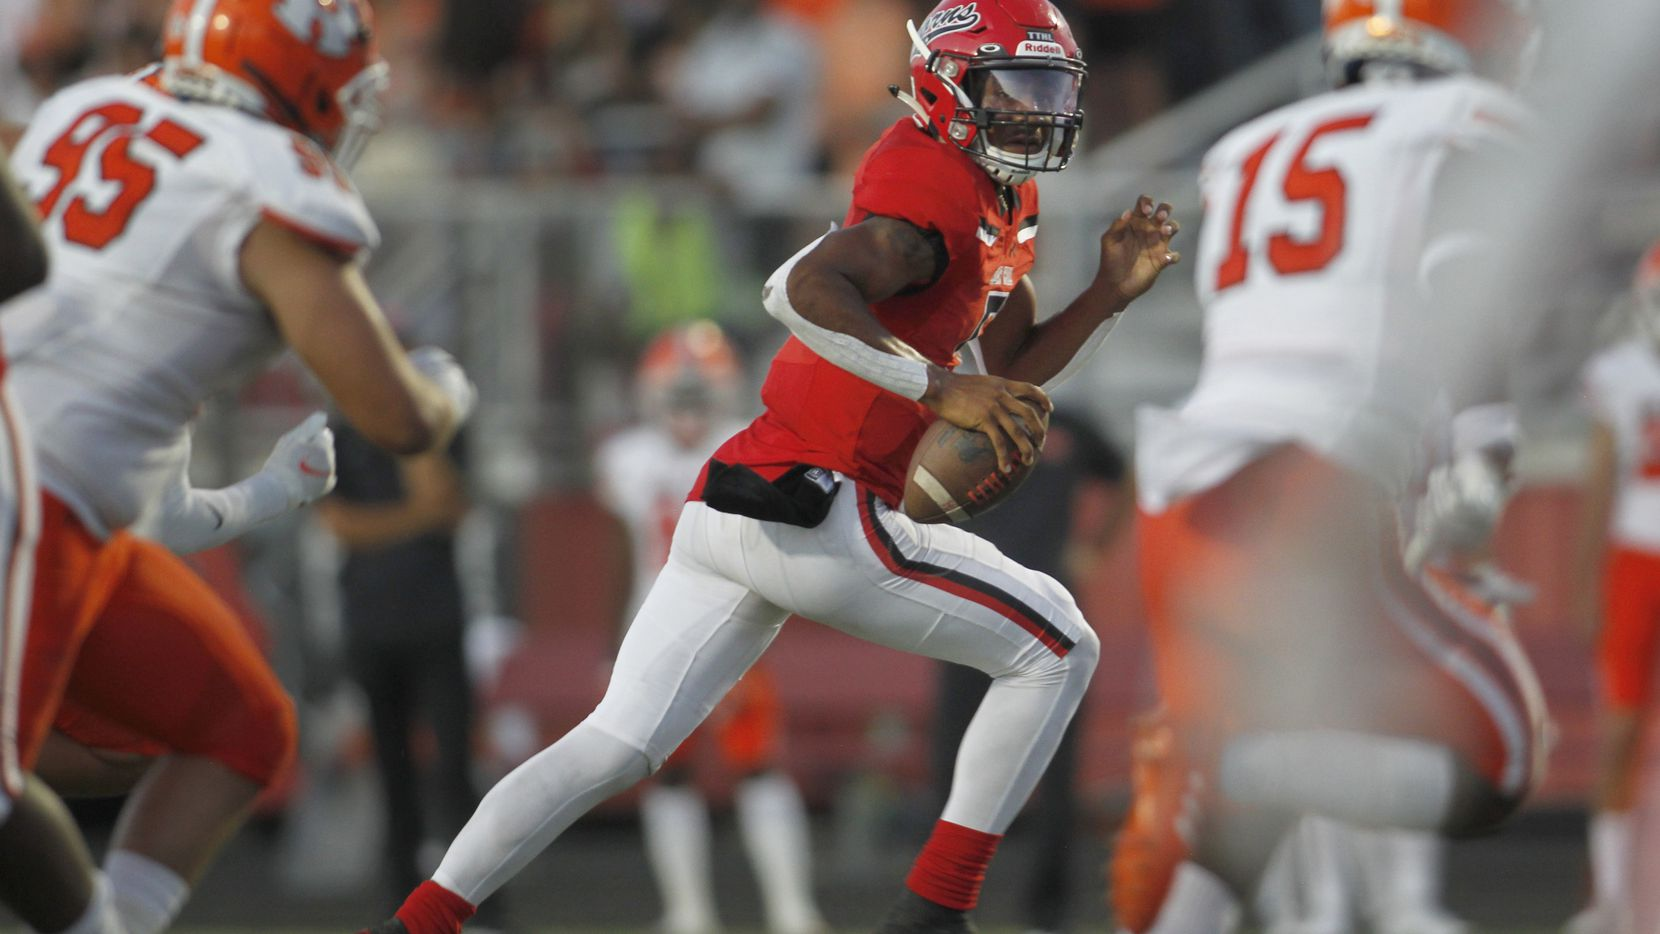 Cedar Hill quarterback Cedric Harden, Jr. (5) rolls out in search of a receiver as Rockwall defenders pursue during first half action. Cedar Hill and Rockwall played their season opening football game at Longhorn Stadium in Cedar Hill on August 27, 2021.